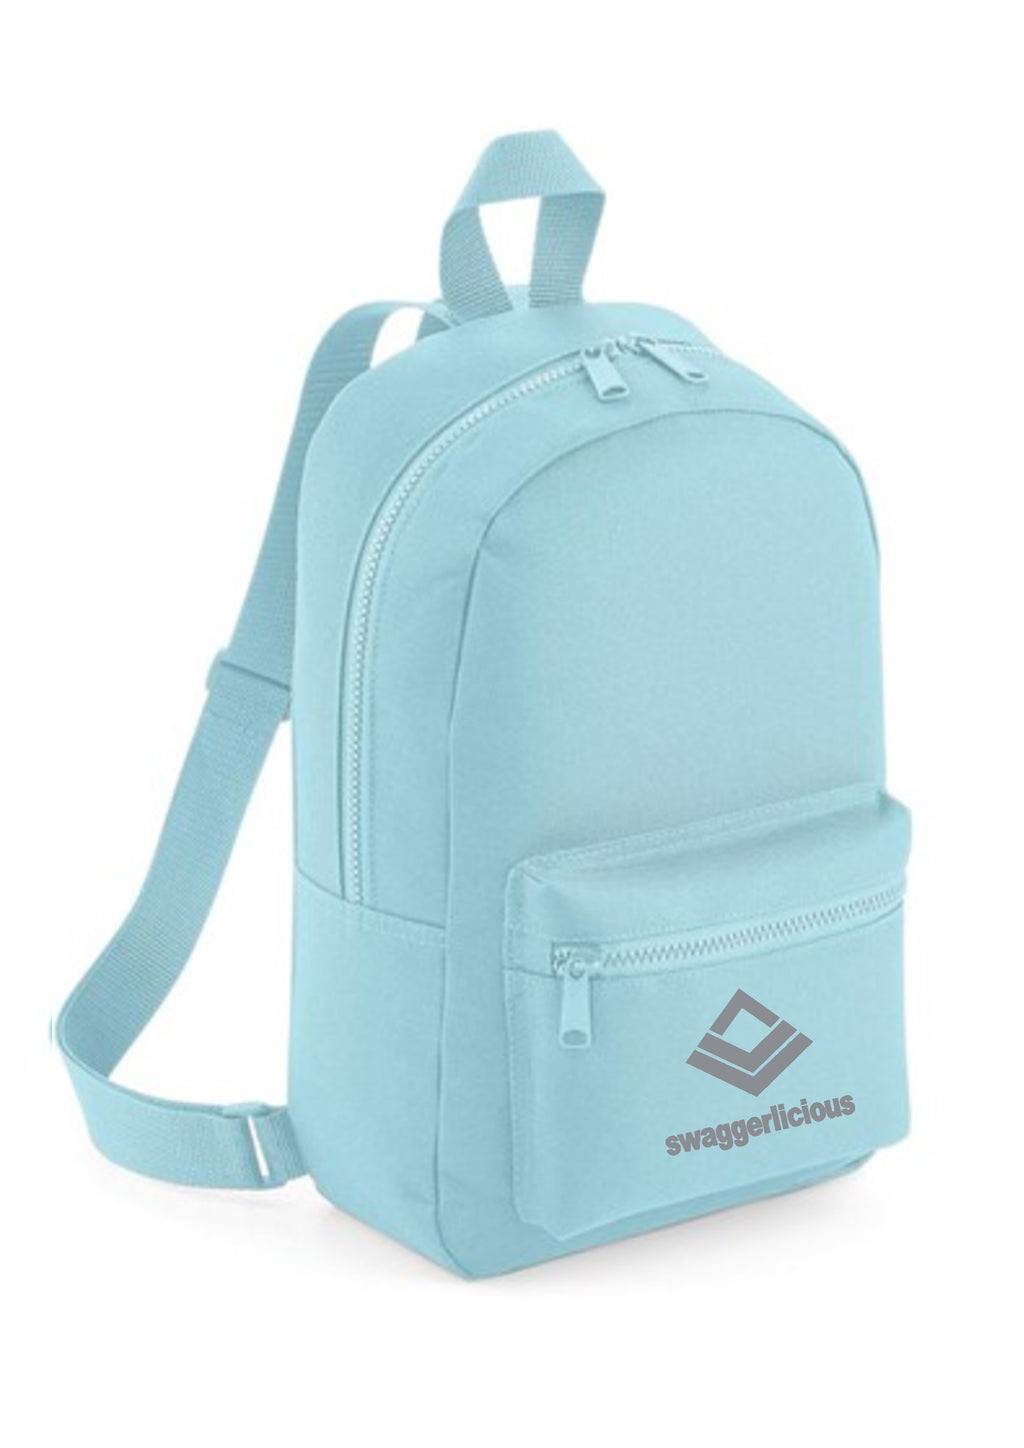 Swaggerlicious Classic Powder Blue Mini Backpack with Silver Logo - swaggerlicious-clothing.com